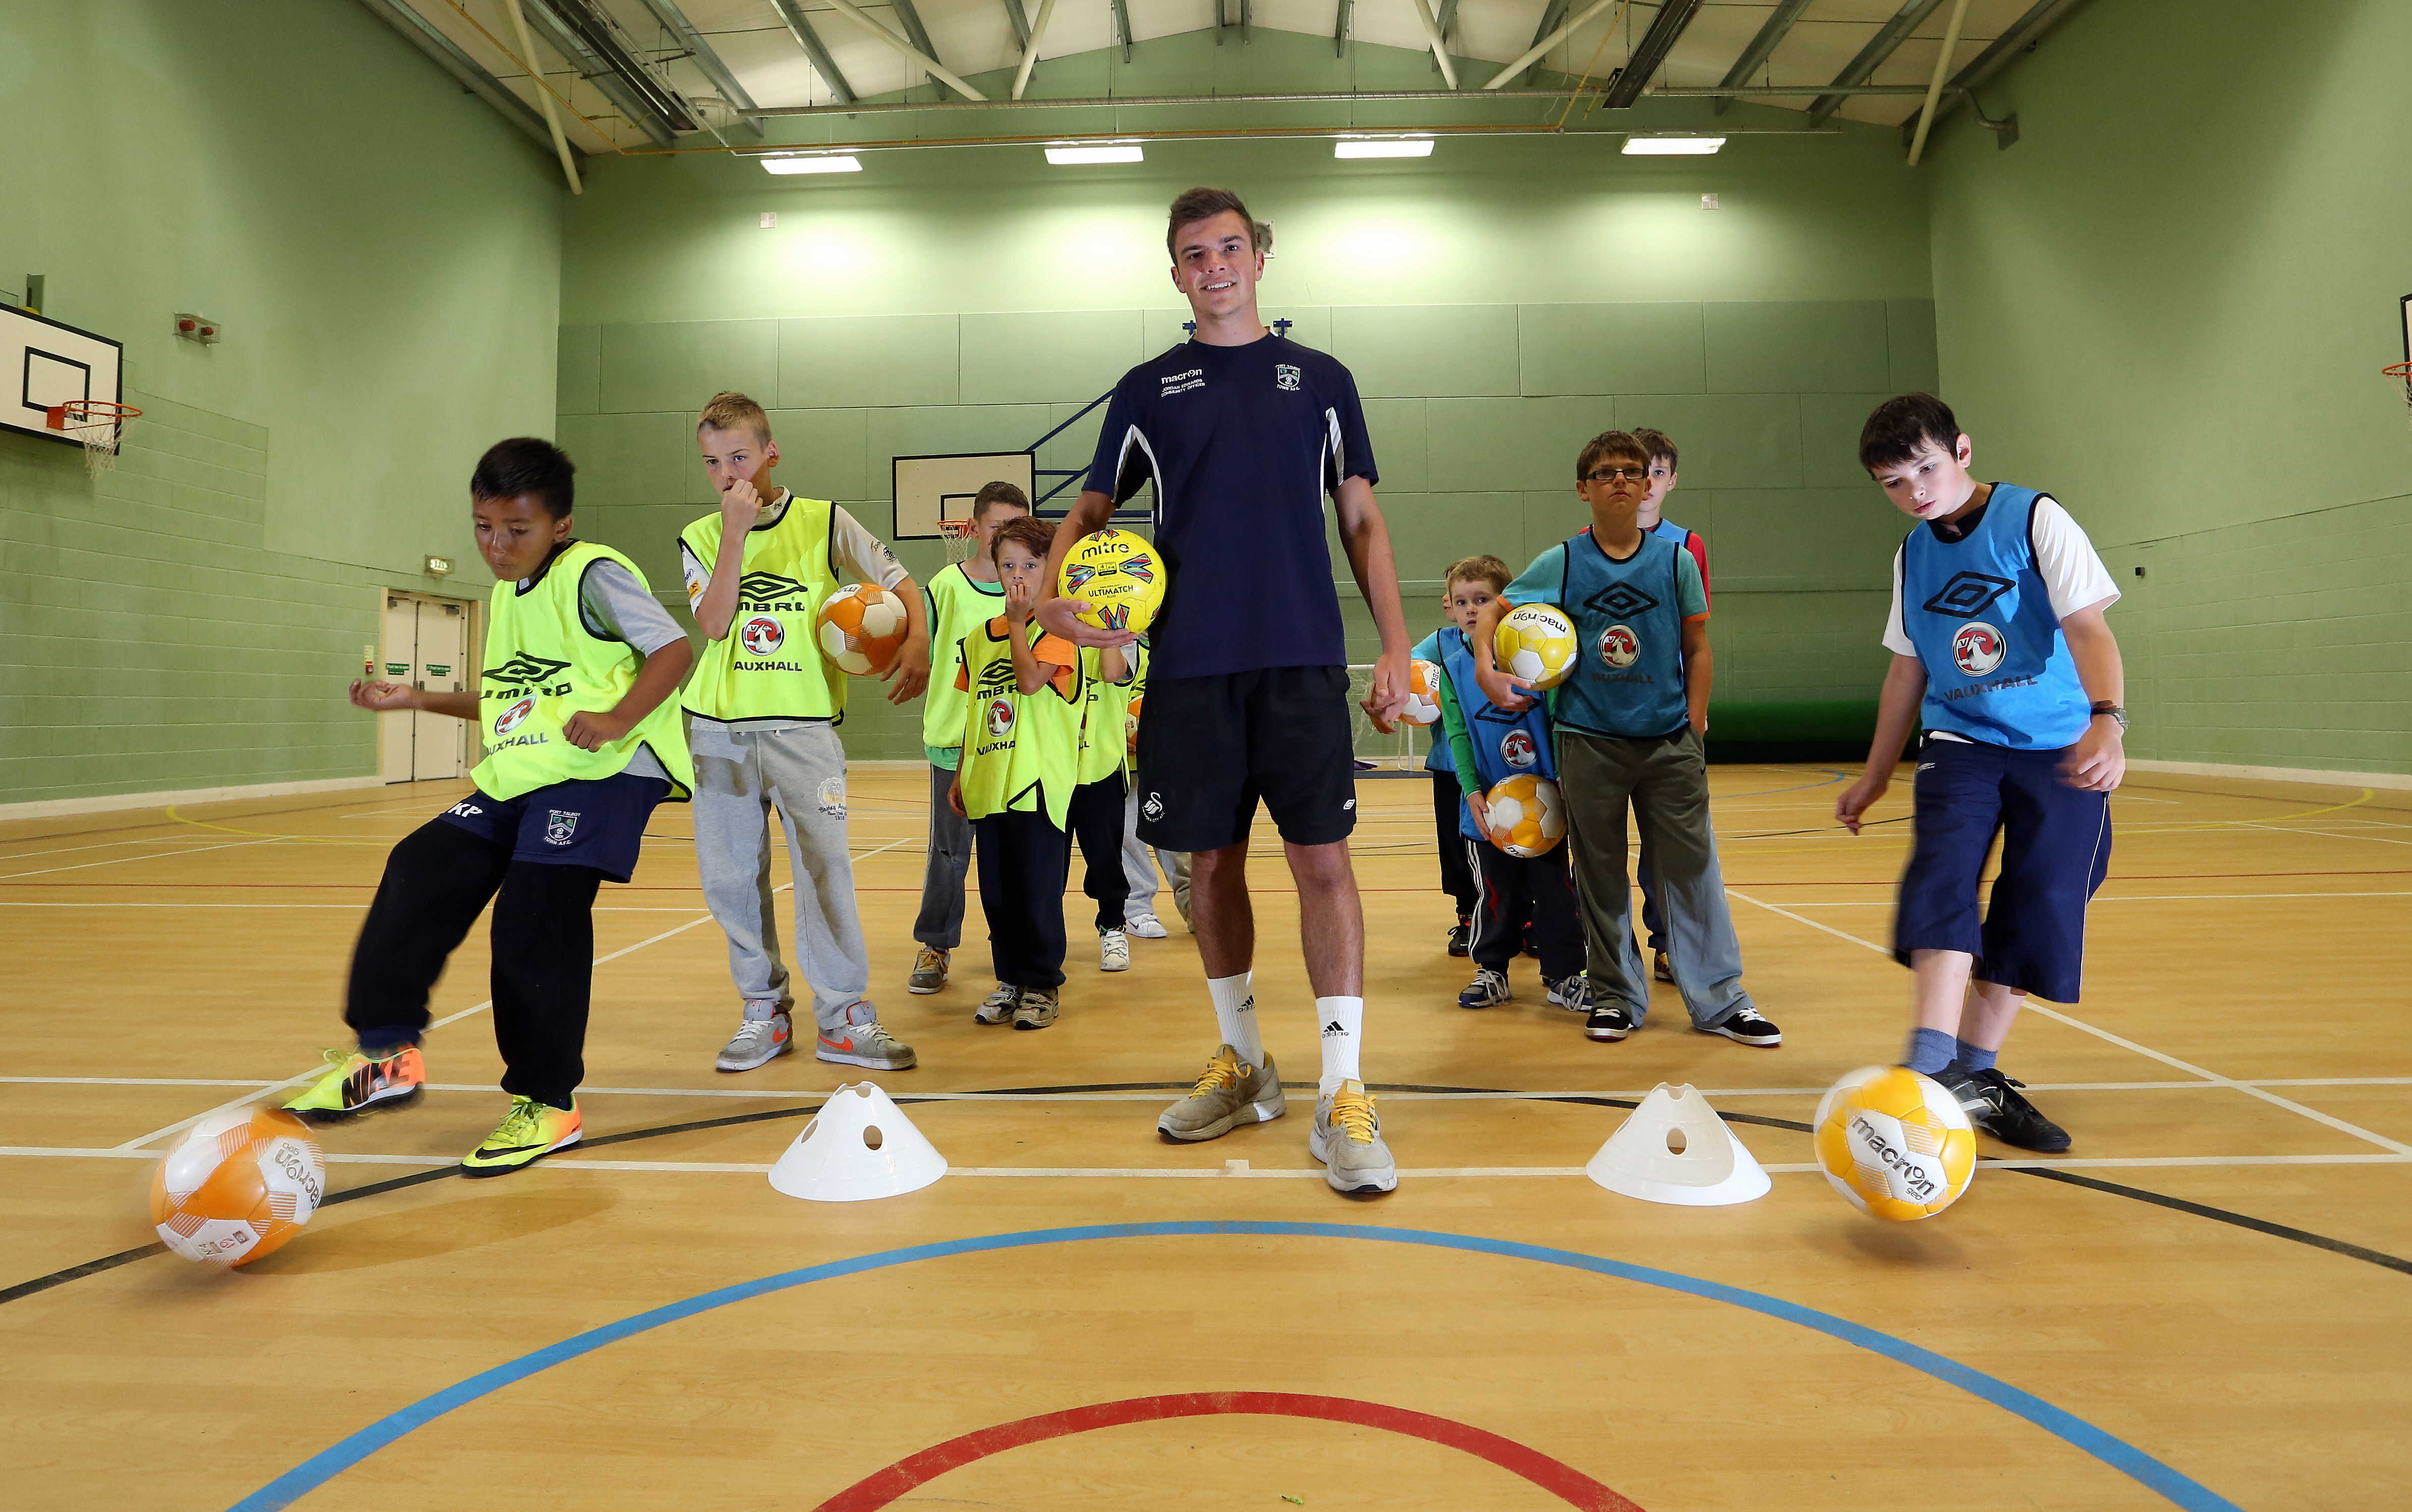 FAW Fun Football encourages Sandfield pupils off the sofa